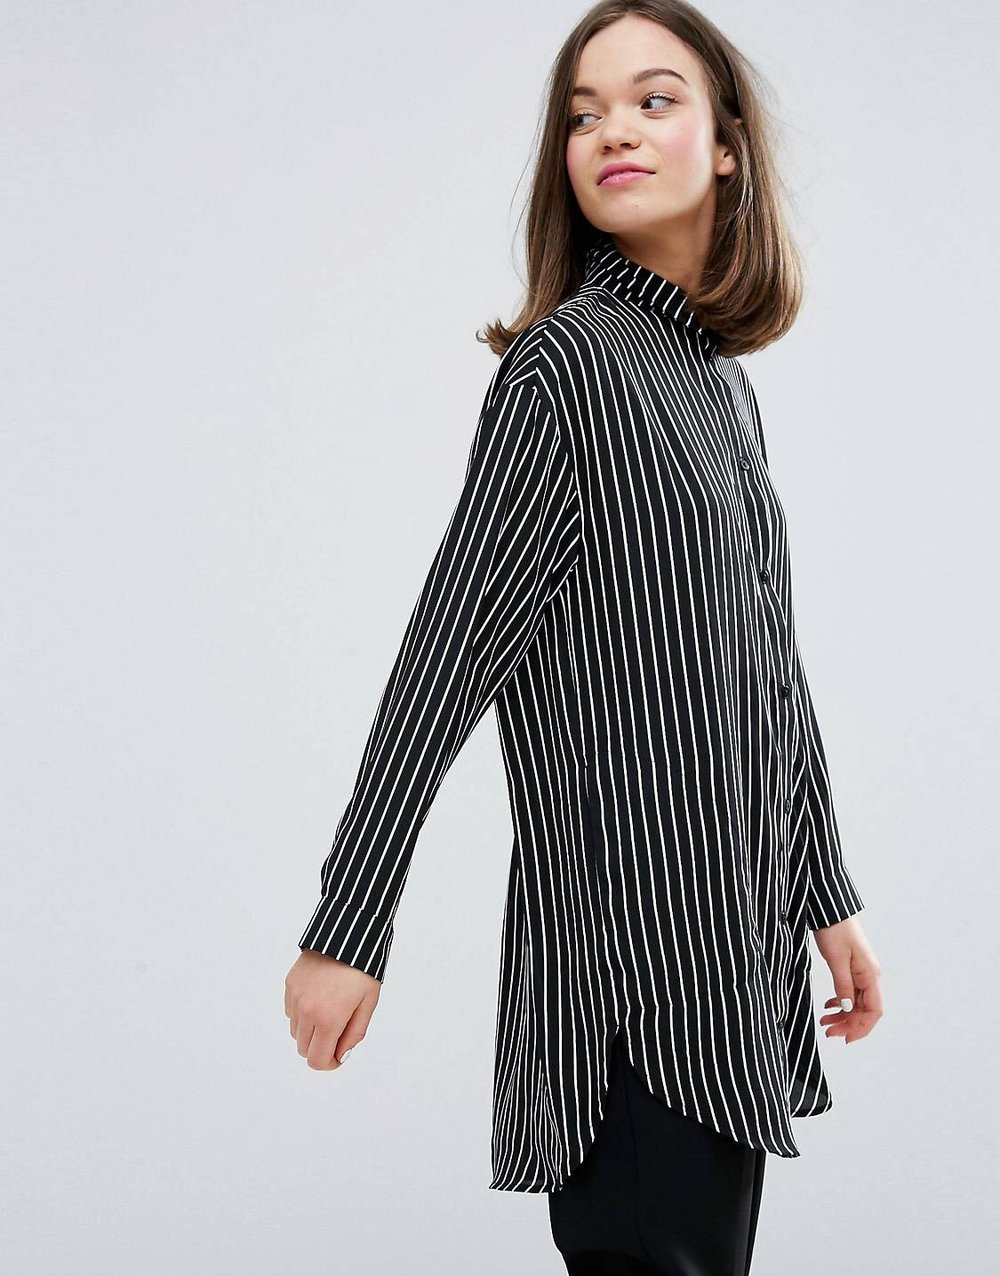 £21 - I love me some Monki, they never fail me.